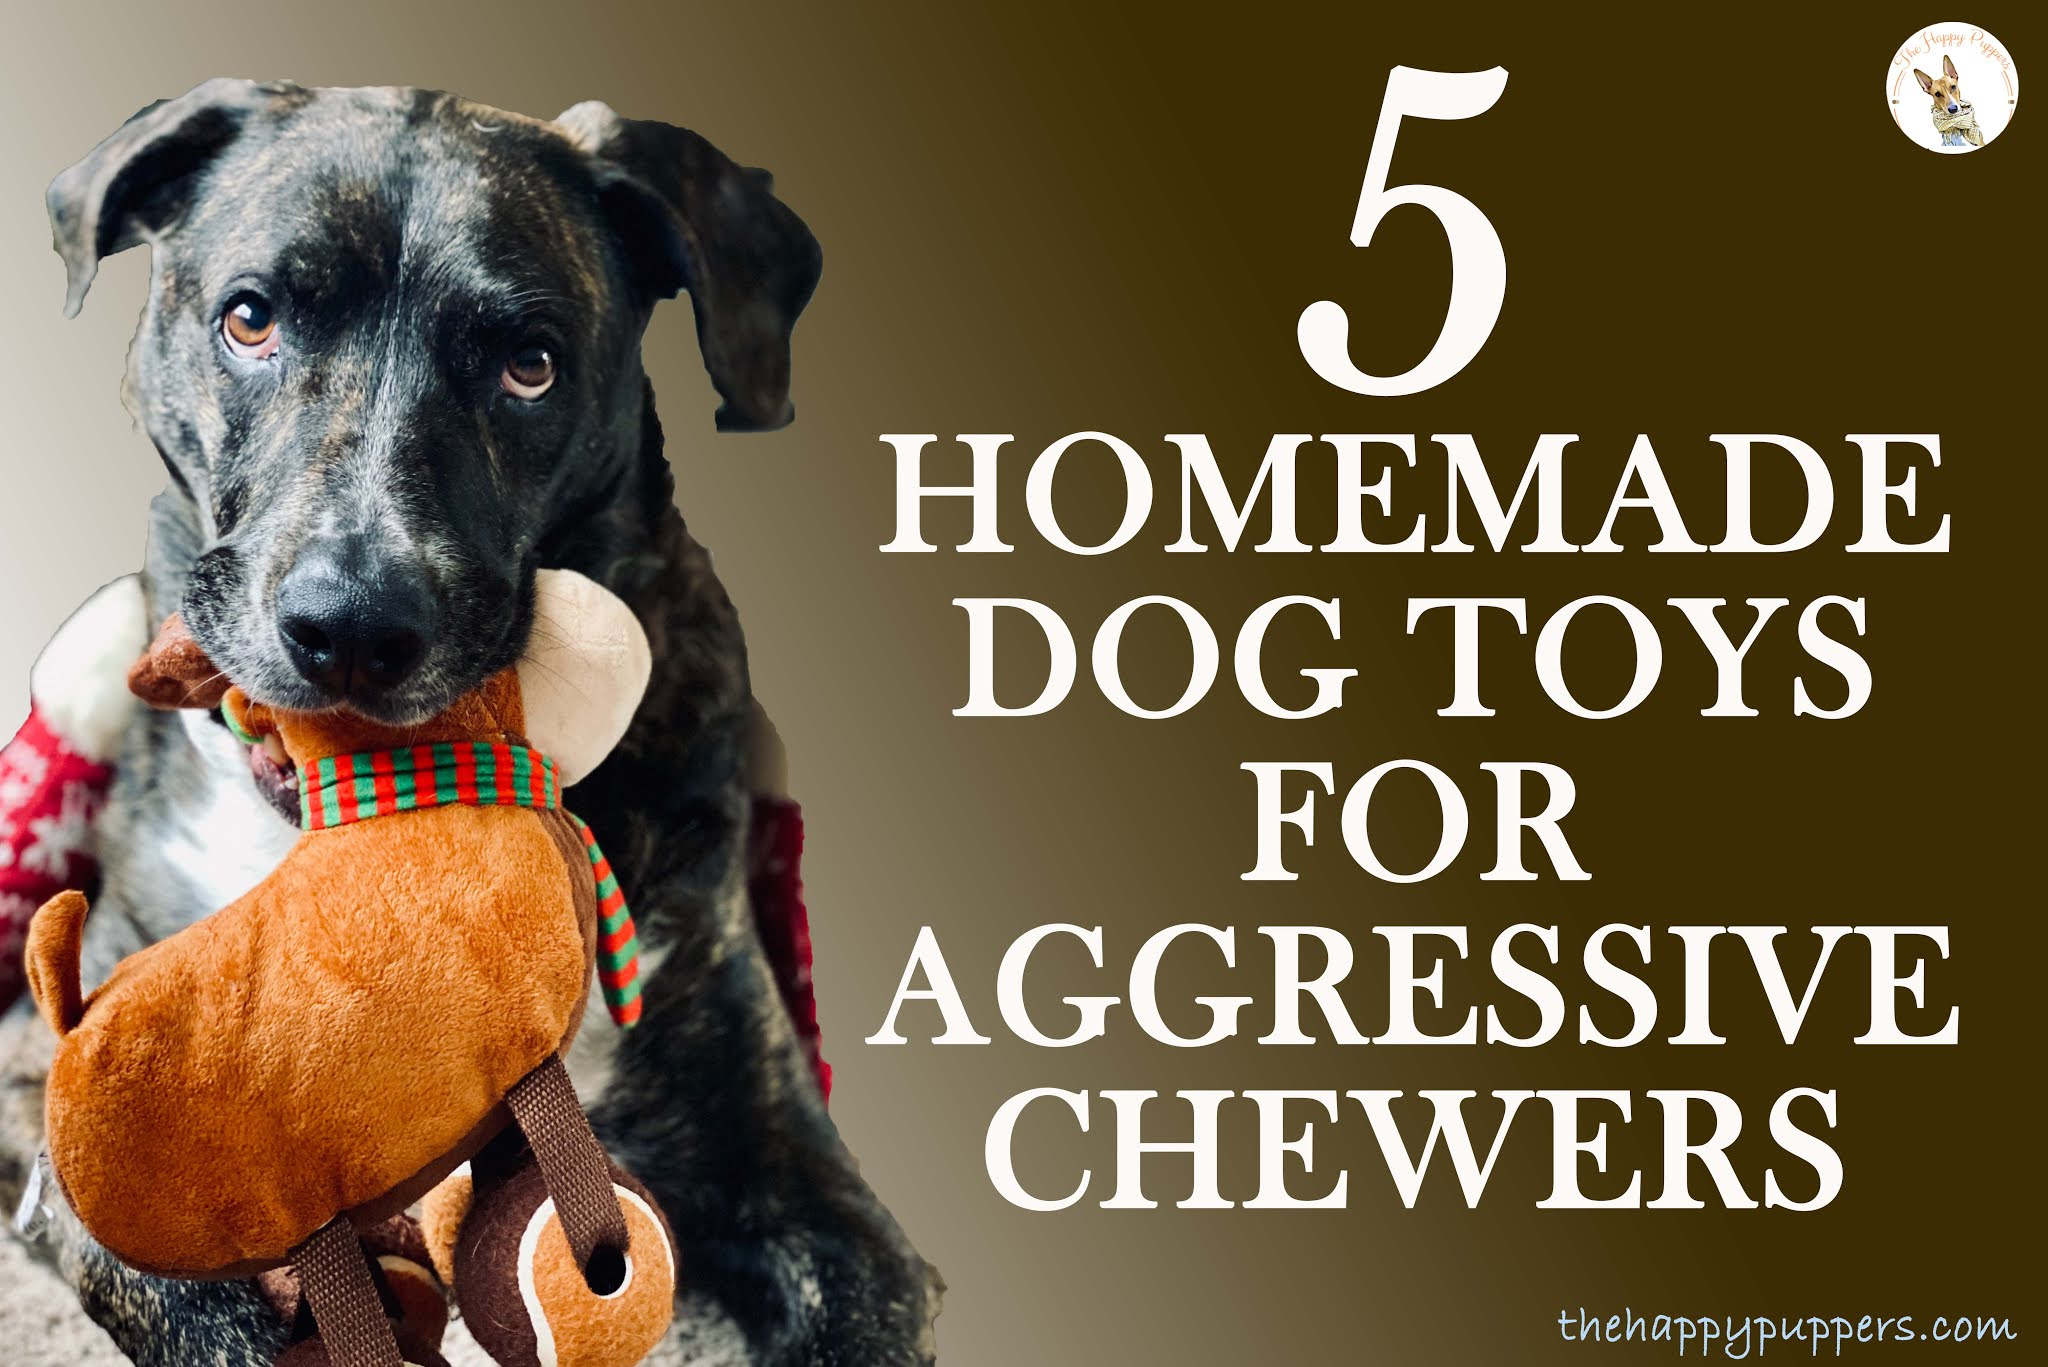 The 5 easiest HOMEMADE DOG TOYS for aggressive chewers